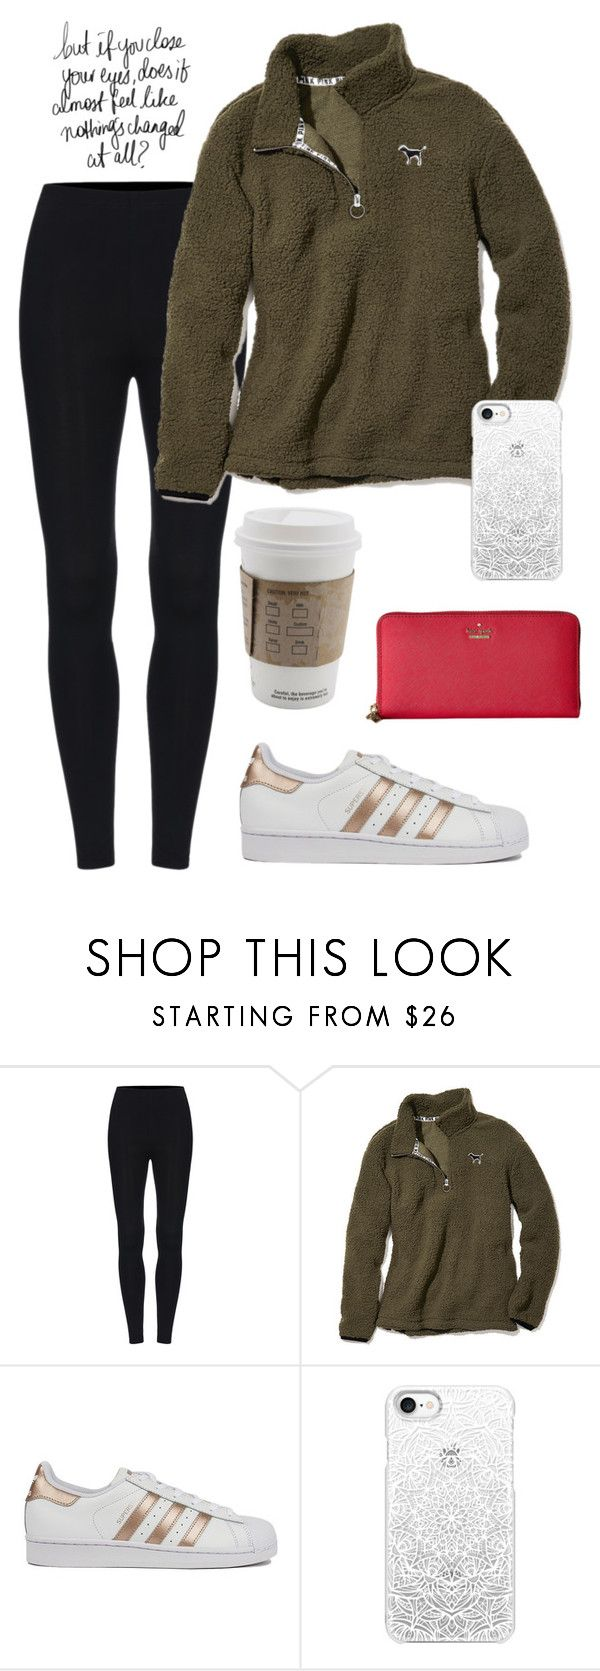 """Untitled #177"" by dianaheart on Polyvore featuring Victoria's Secret, adidas, Casetify and Kate Spade"